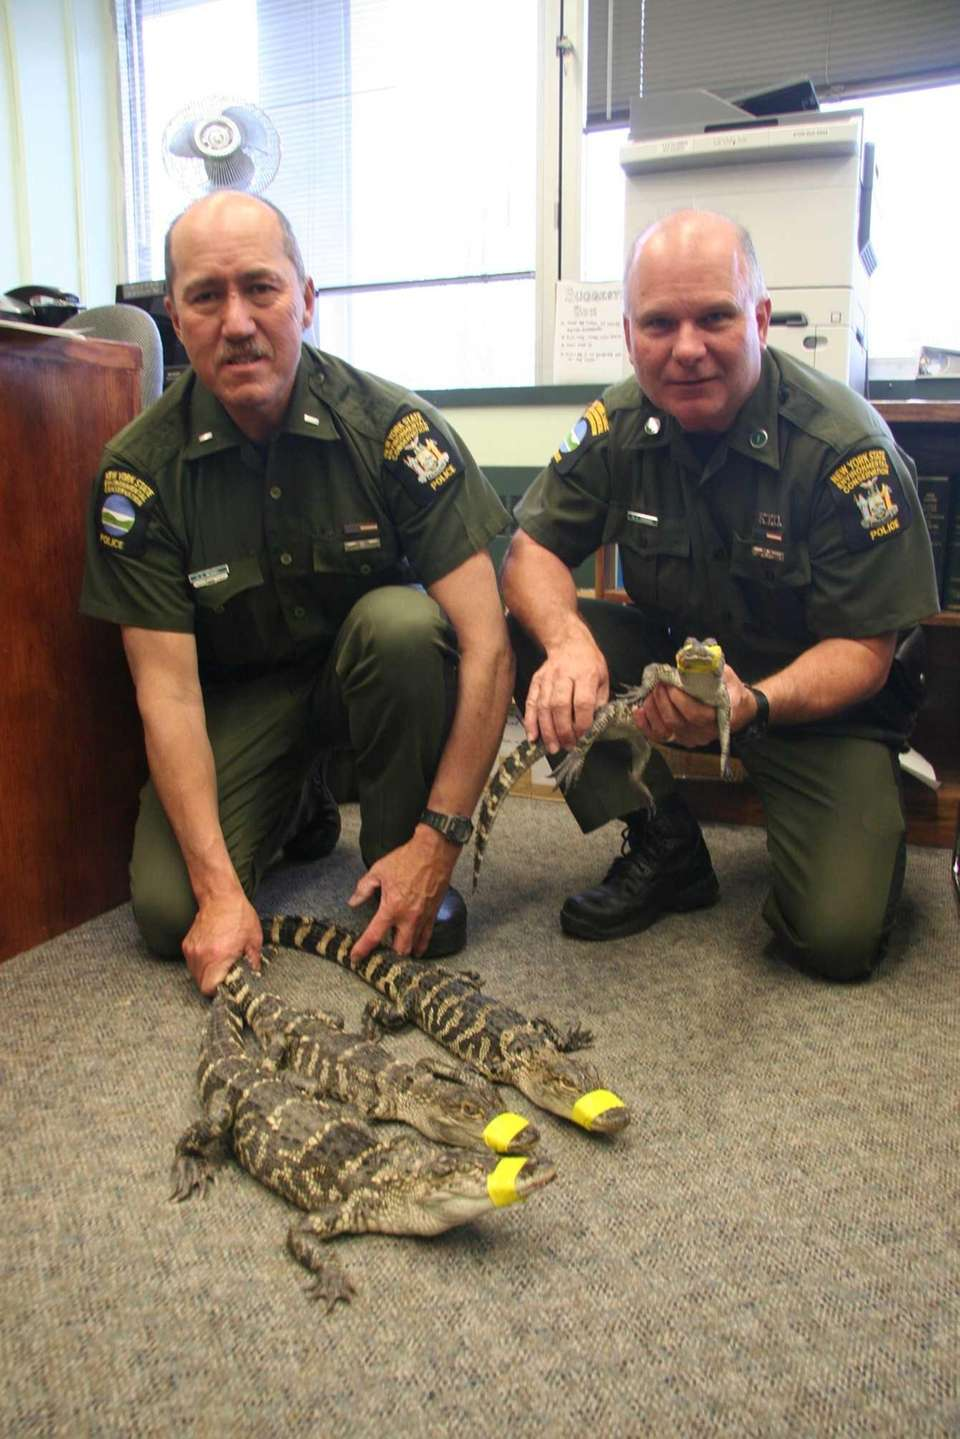 Department of Environmental Conservation Lt. Dallas Bengel, left,